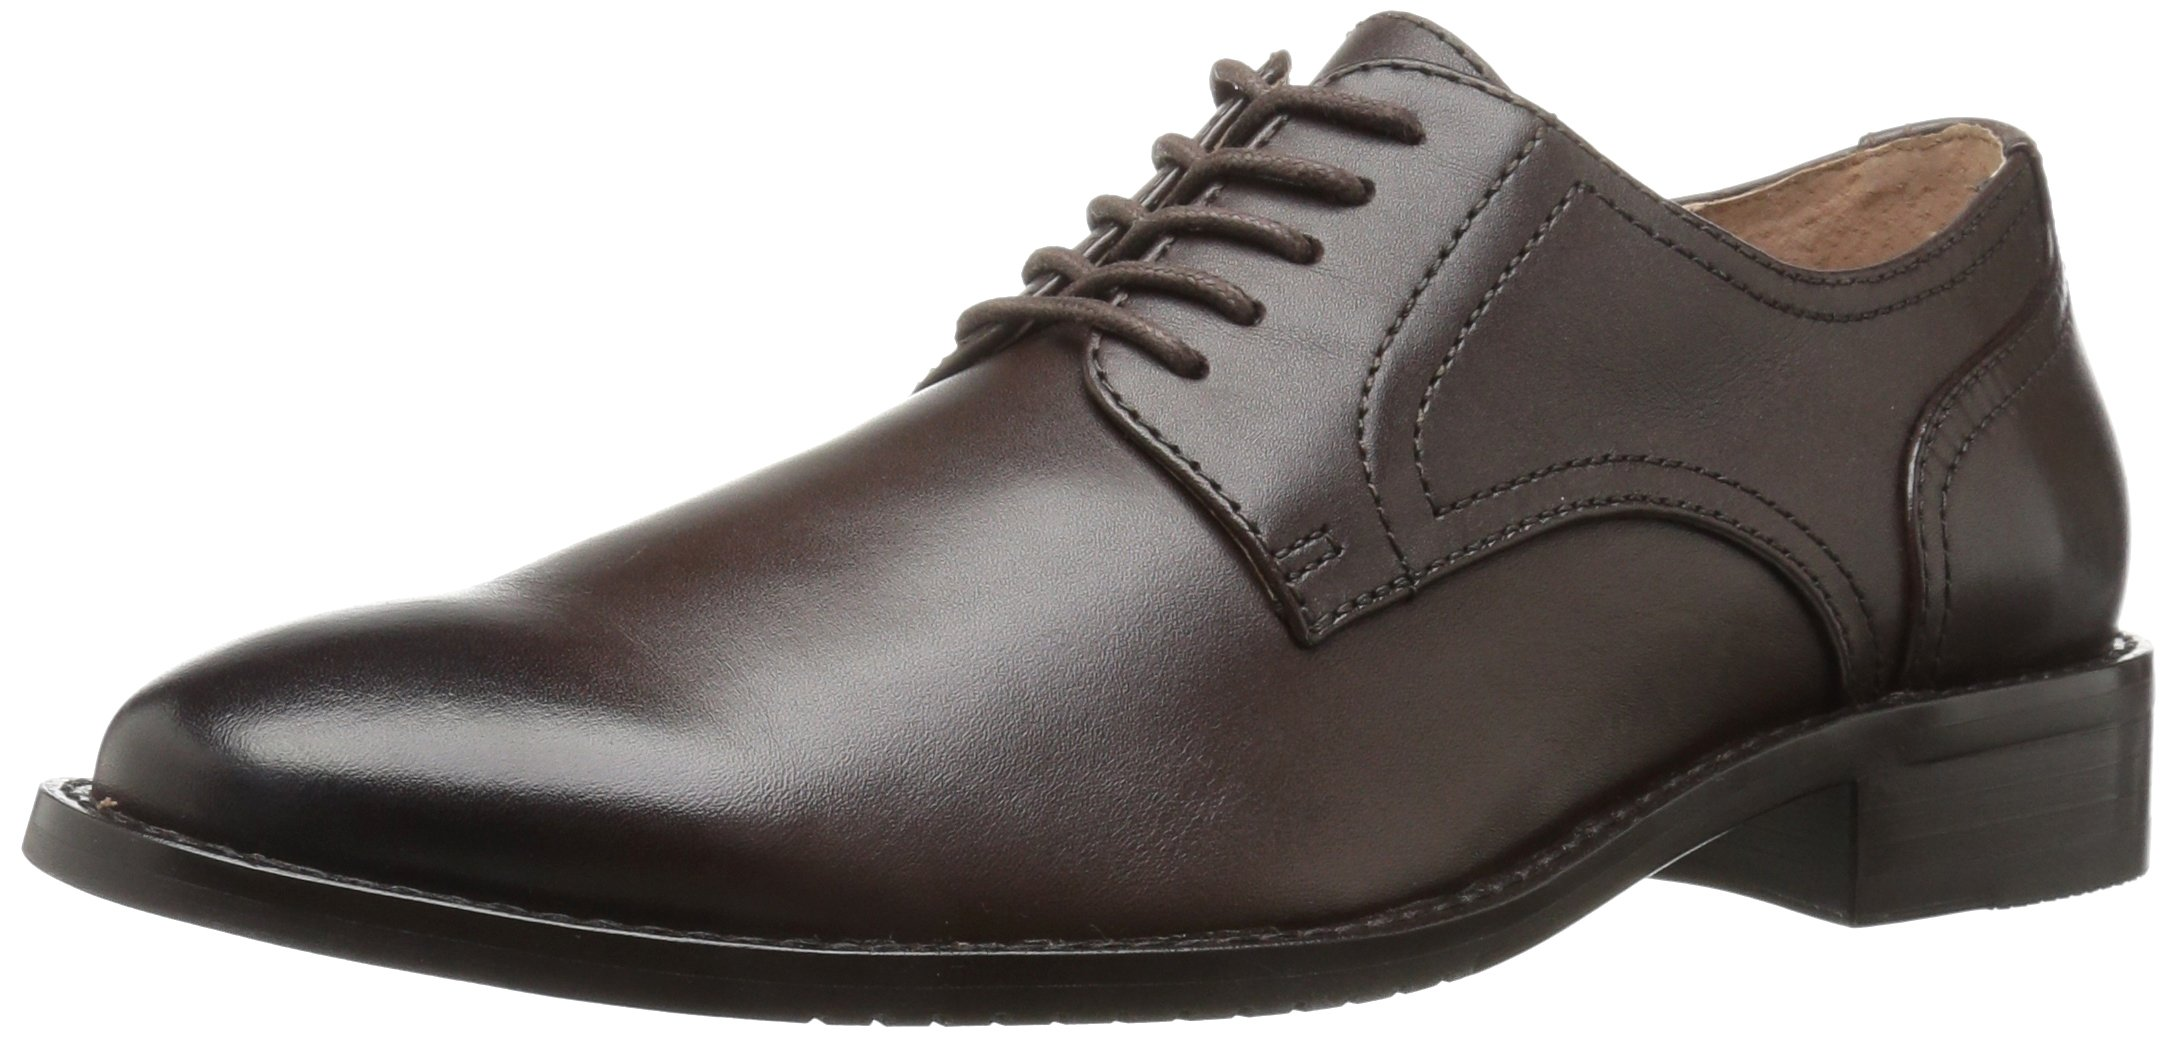 206 Collective Men's Concord Plain-Toe Oxford Shoe, Chocolate Brown, 11 D US by 206 Collective (Image #1)